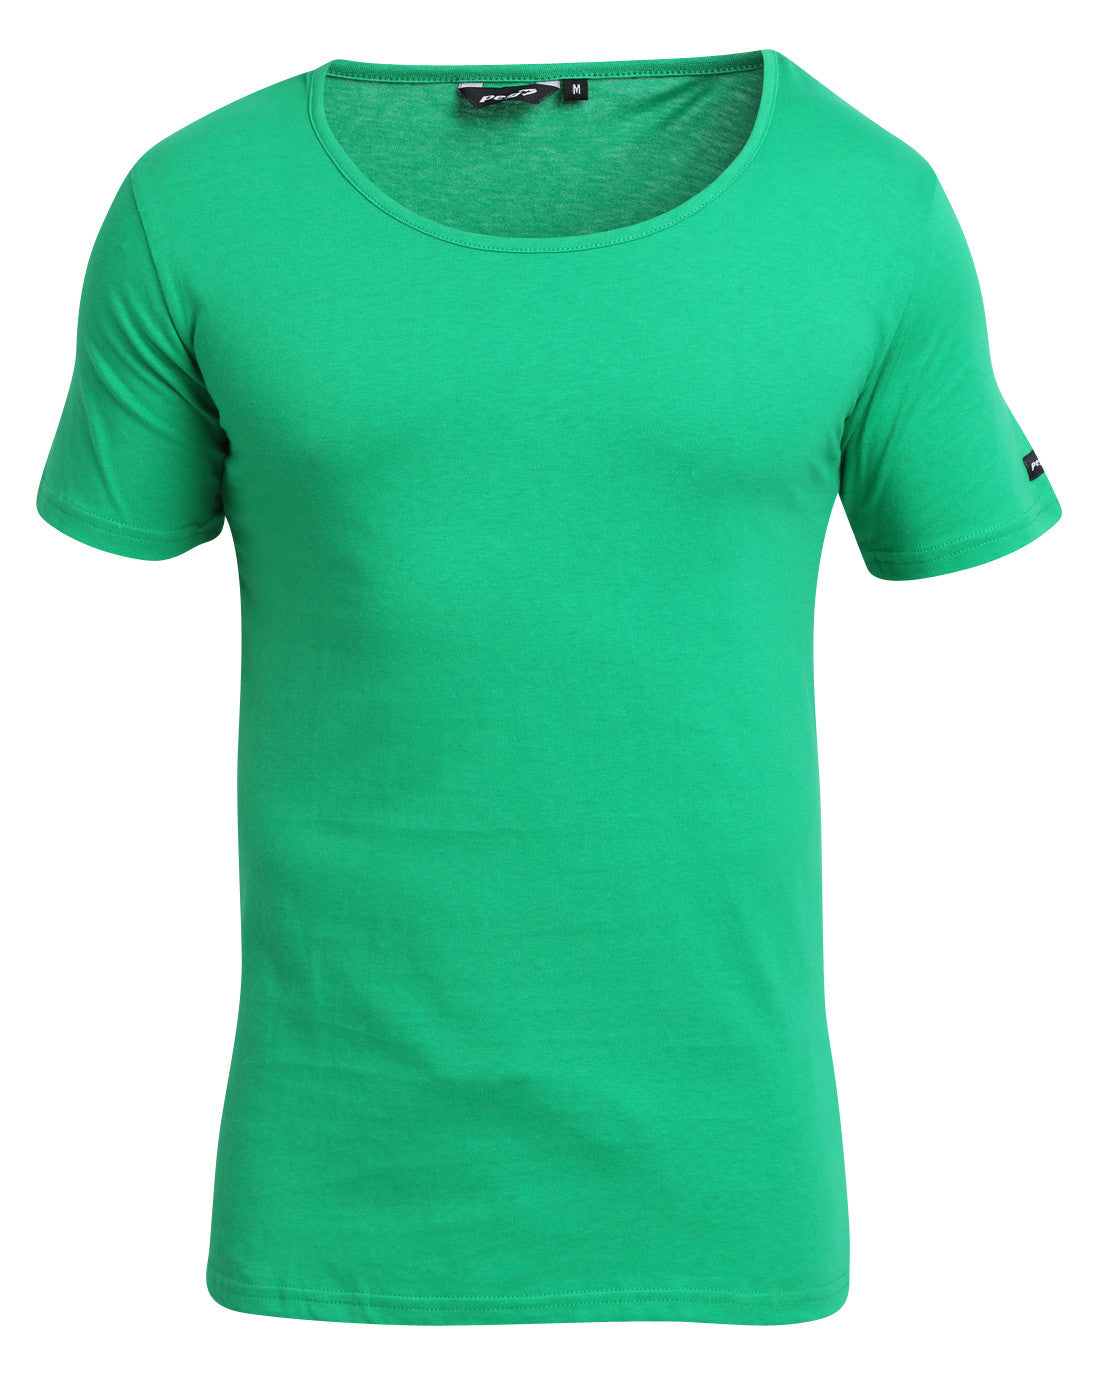 T Shirts Tops Men 39 S Boat Neck Green M Was Listed